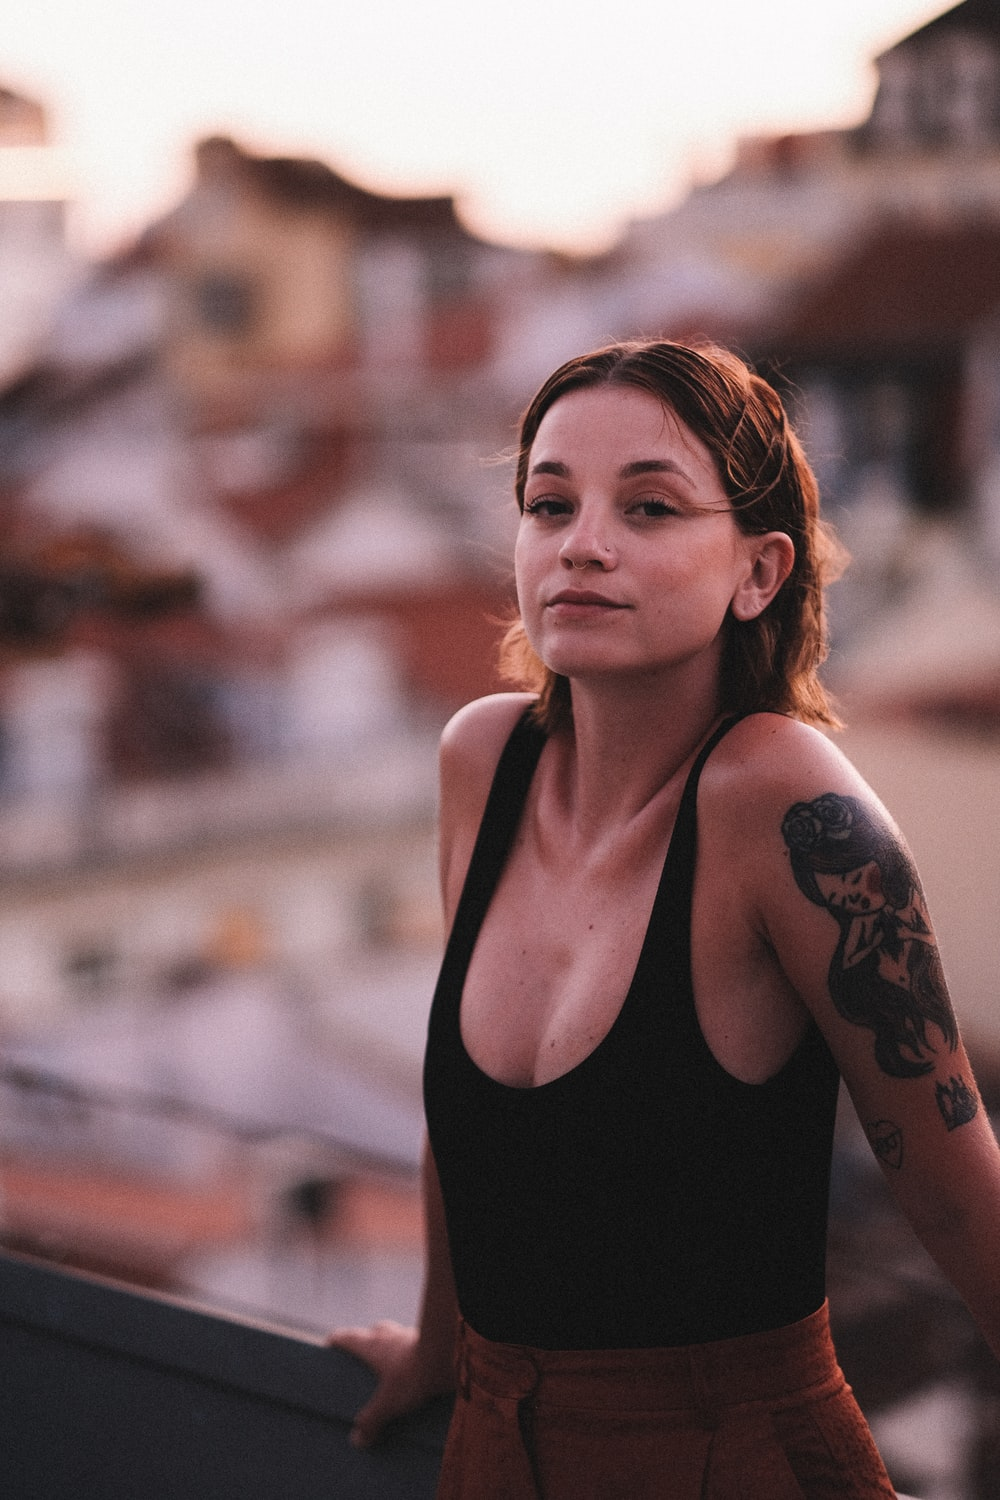 woman in black tank top with black floral tattoo on her left shoulder